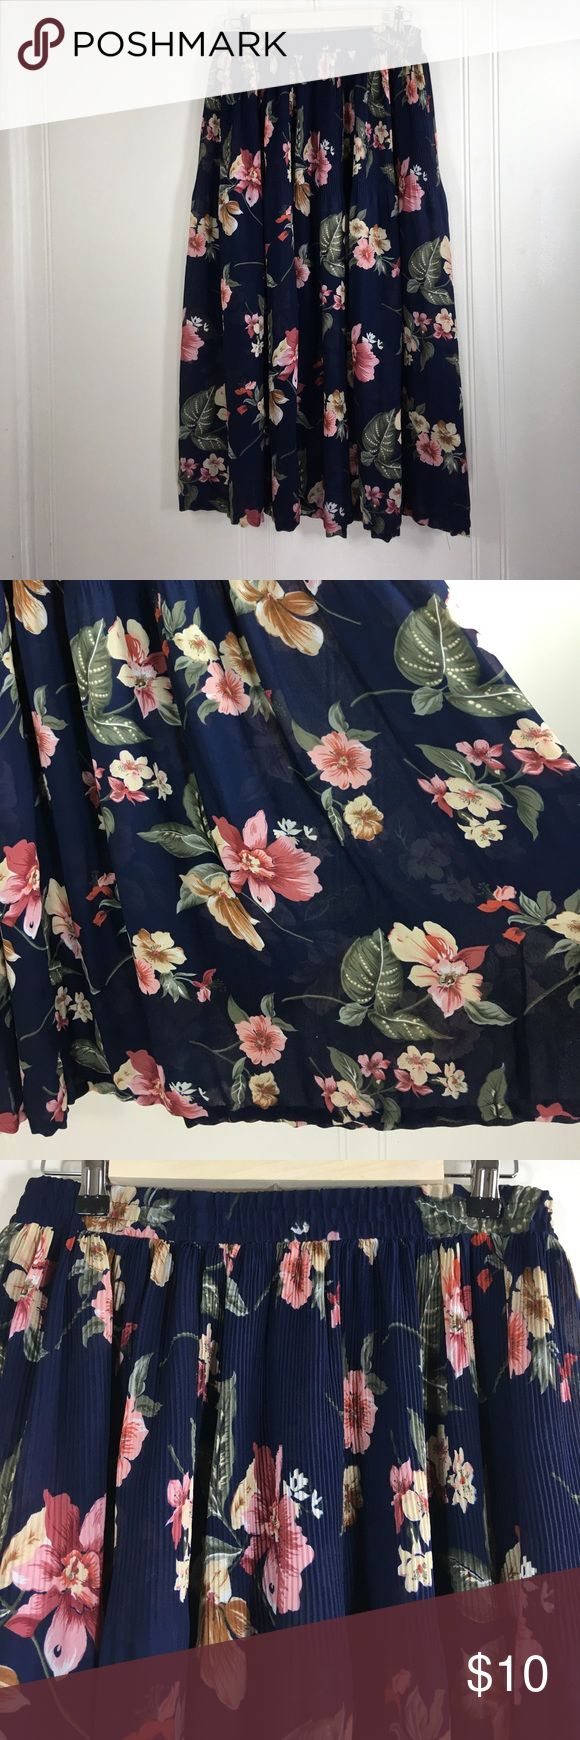 """All Items 3for&15! Plus Size Sheer Floral Midi Preowned condition. No stains or holes. Normal wash and wear.          Note: No Lining.                                Tag Size: plus Size: 2x.                  Waist Flat: 16"""". Before stretch.           Length: 32"""".                                         Please go off measurements and NOT Tag Size. Sizes differ from company to company. I questions! Please ask any and all questions before purchasing.   Thanks! ~Rag Time Machine.~ Sag Harbor…"""